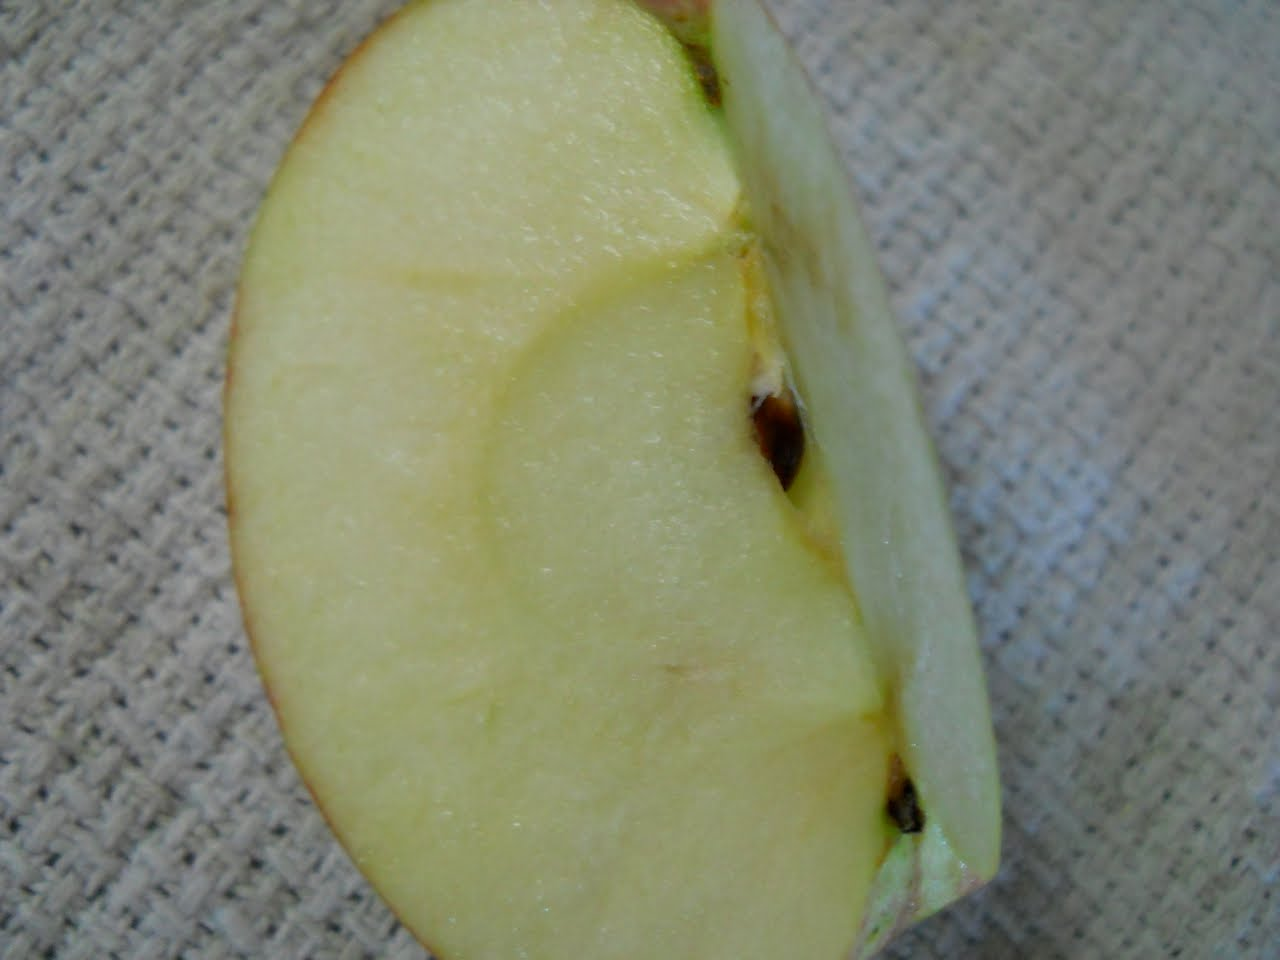 another sign of a ripe apple is brown seeds the seeds of an unripened apple will still be white as the apple ripens so do the seeds inside them and they